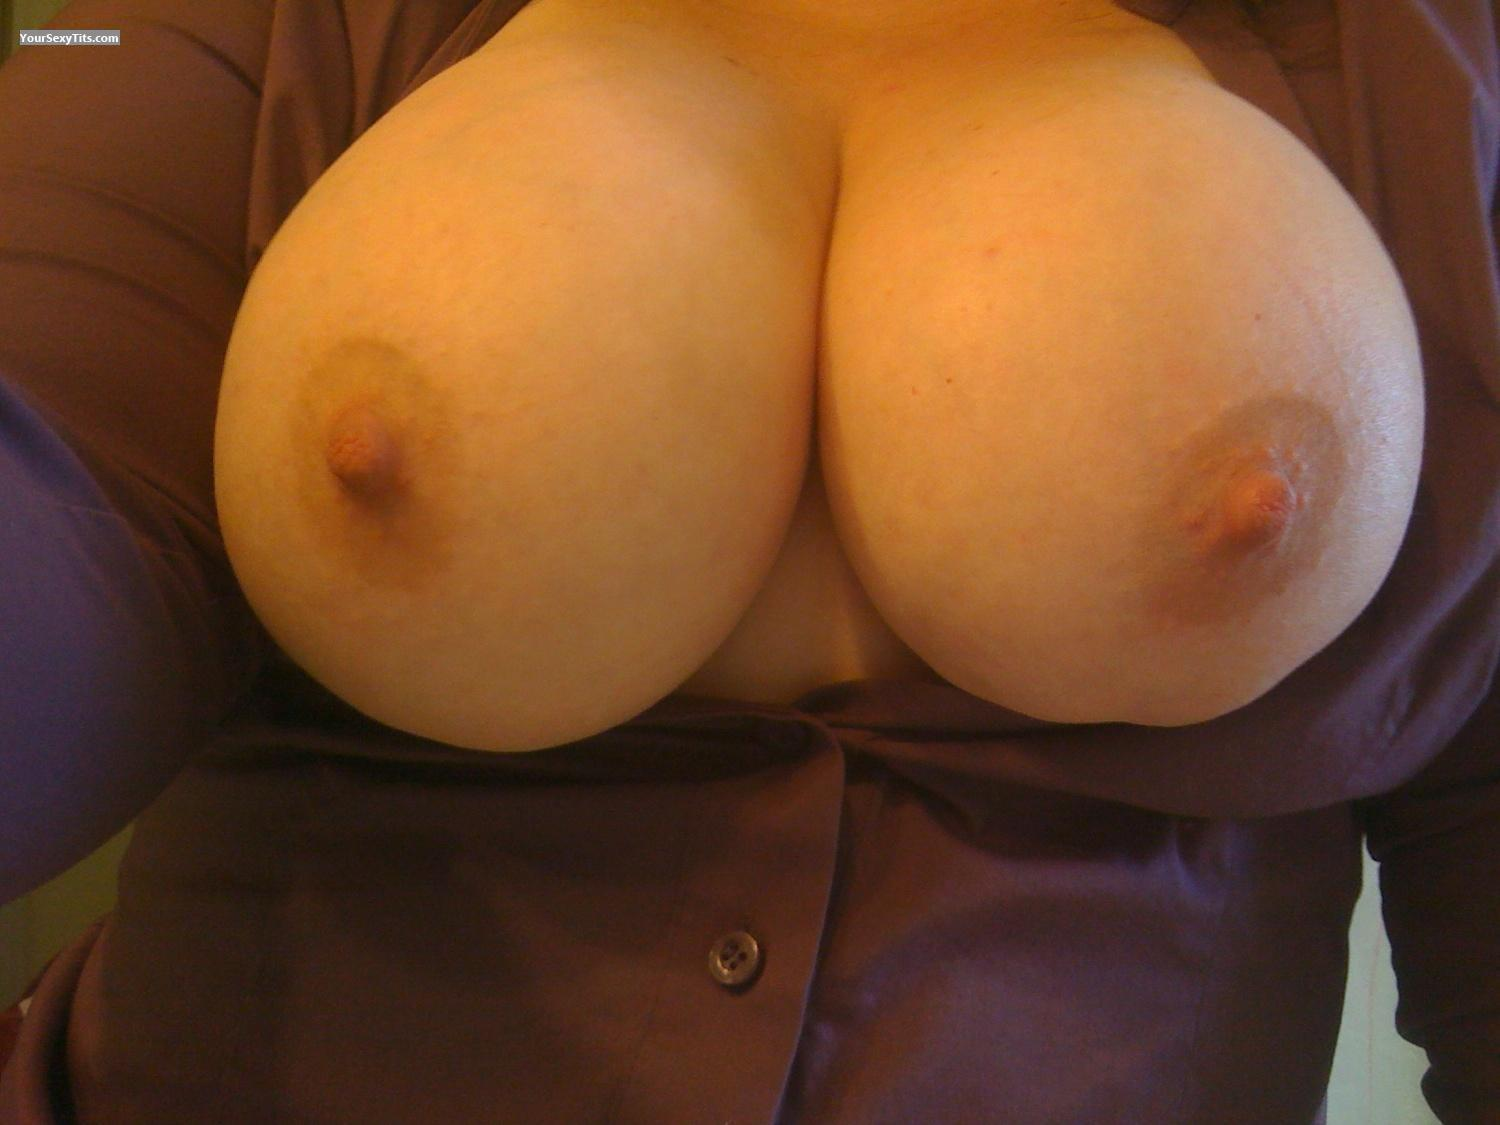 Tit Flash: My Very Big Tits By IPhone (Selfie) - Lovemydd from United States